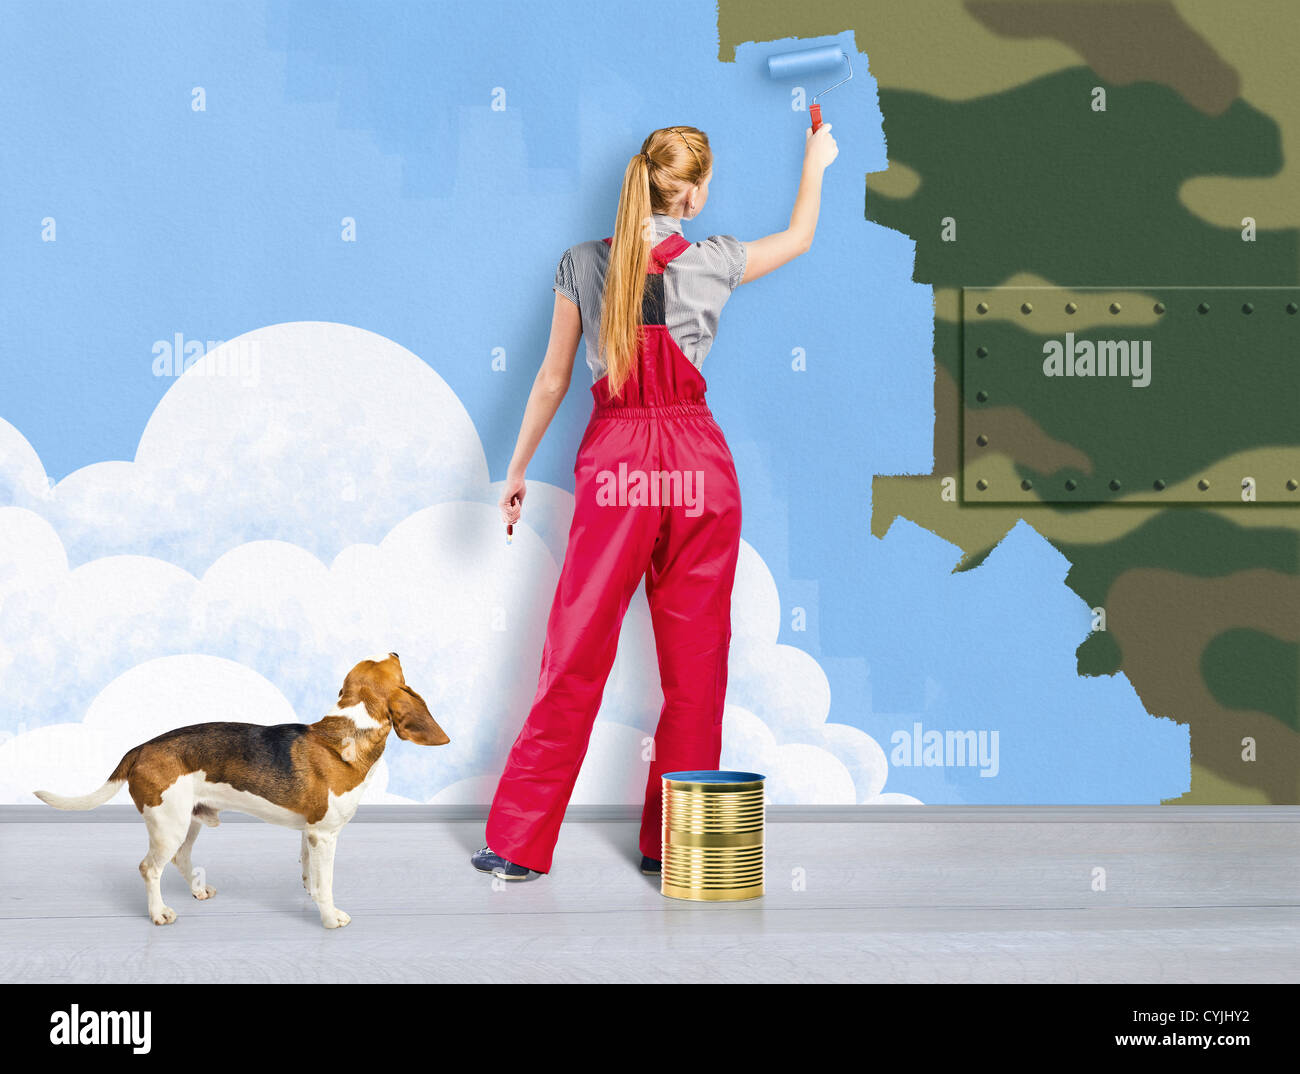 Concept image against militarism and arms - Stock Image